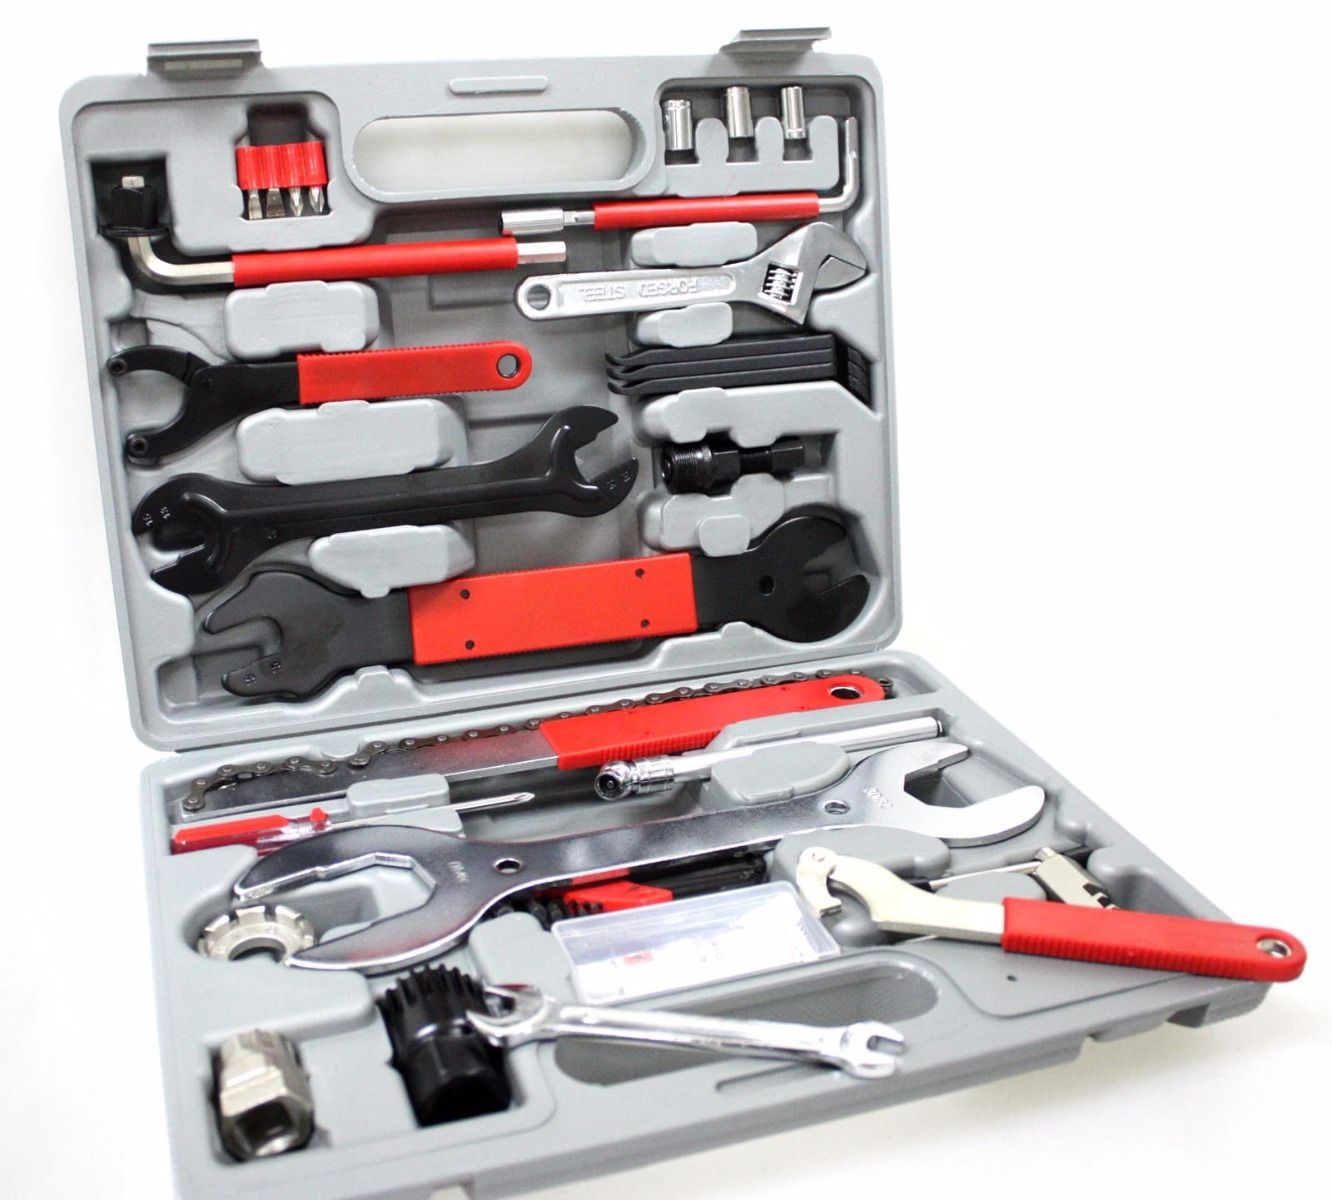 Outdoor Universal Bicycle Repair Tools Set Kit Case Mountain Road Bicycle Repair Set Cycling Bike Tool for Bicycle Shop Parts 44pcs set mountain bike patchs maintenance repair box diagnostic tools kit valuables cycling chain case bicycle accessories